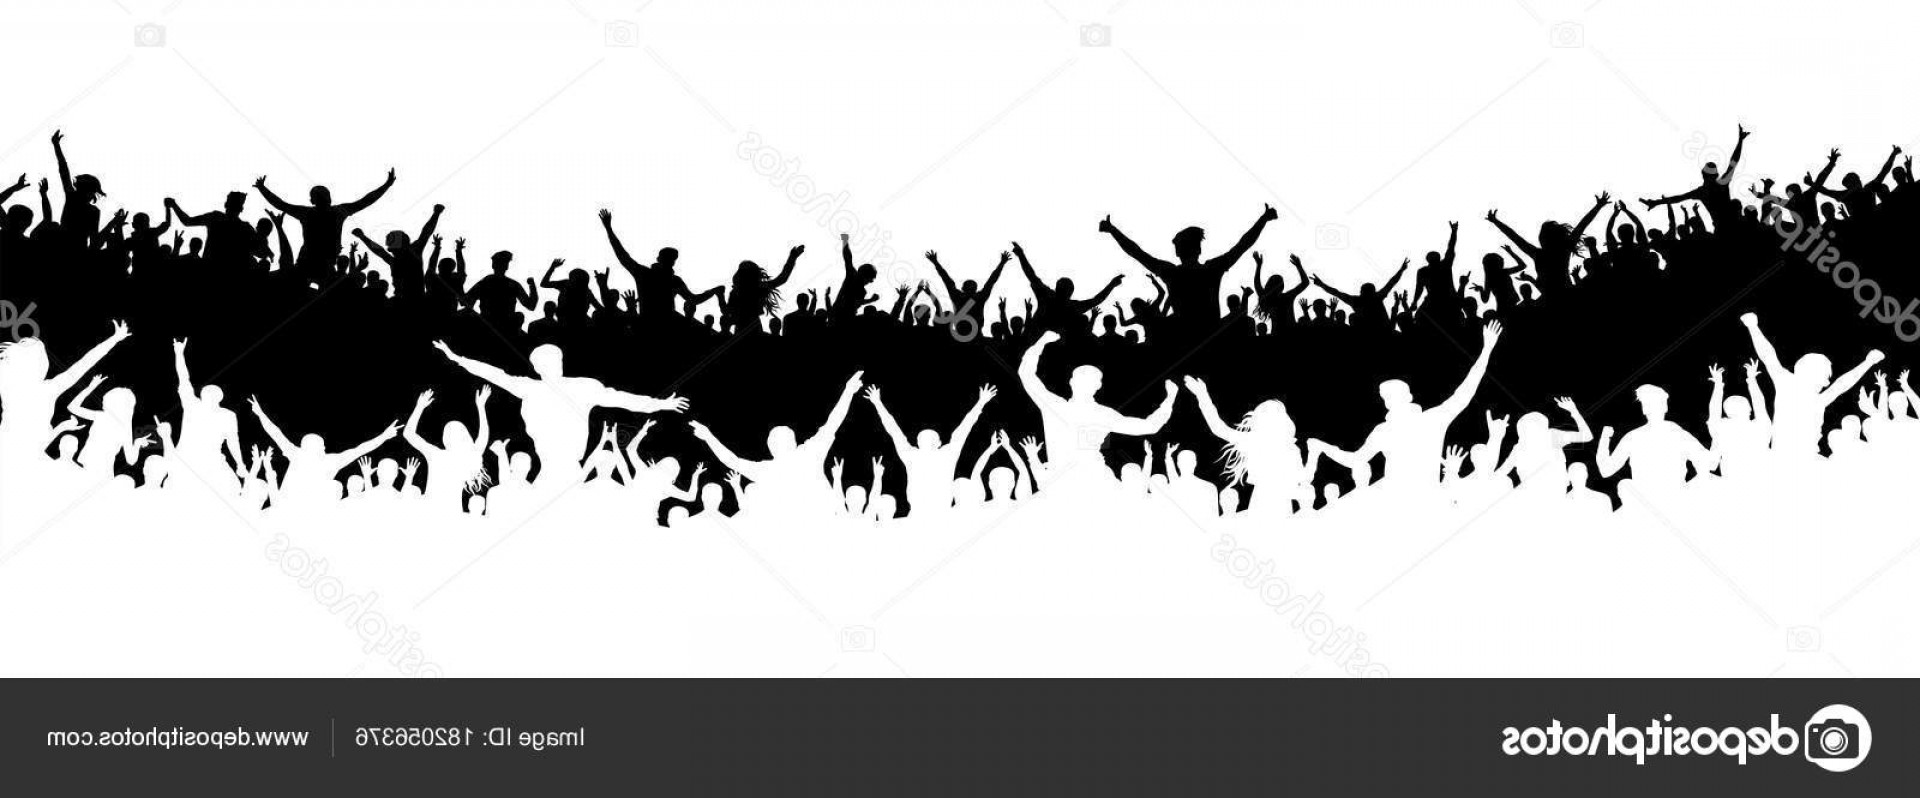 Vector Sports Crowd Cheering: Stock Illustration Crowd Of People In The